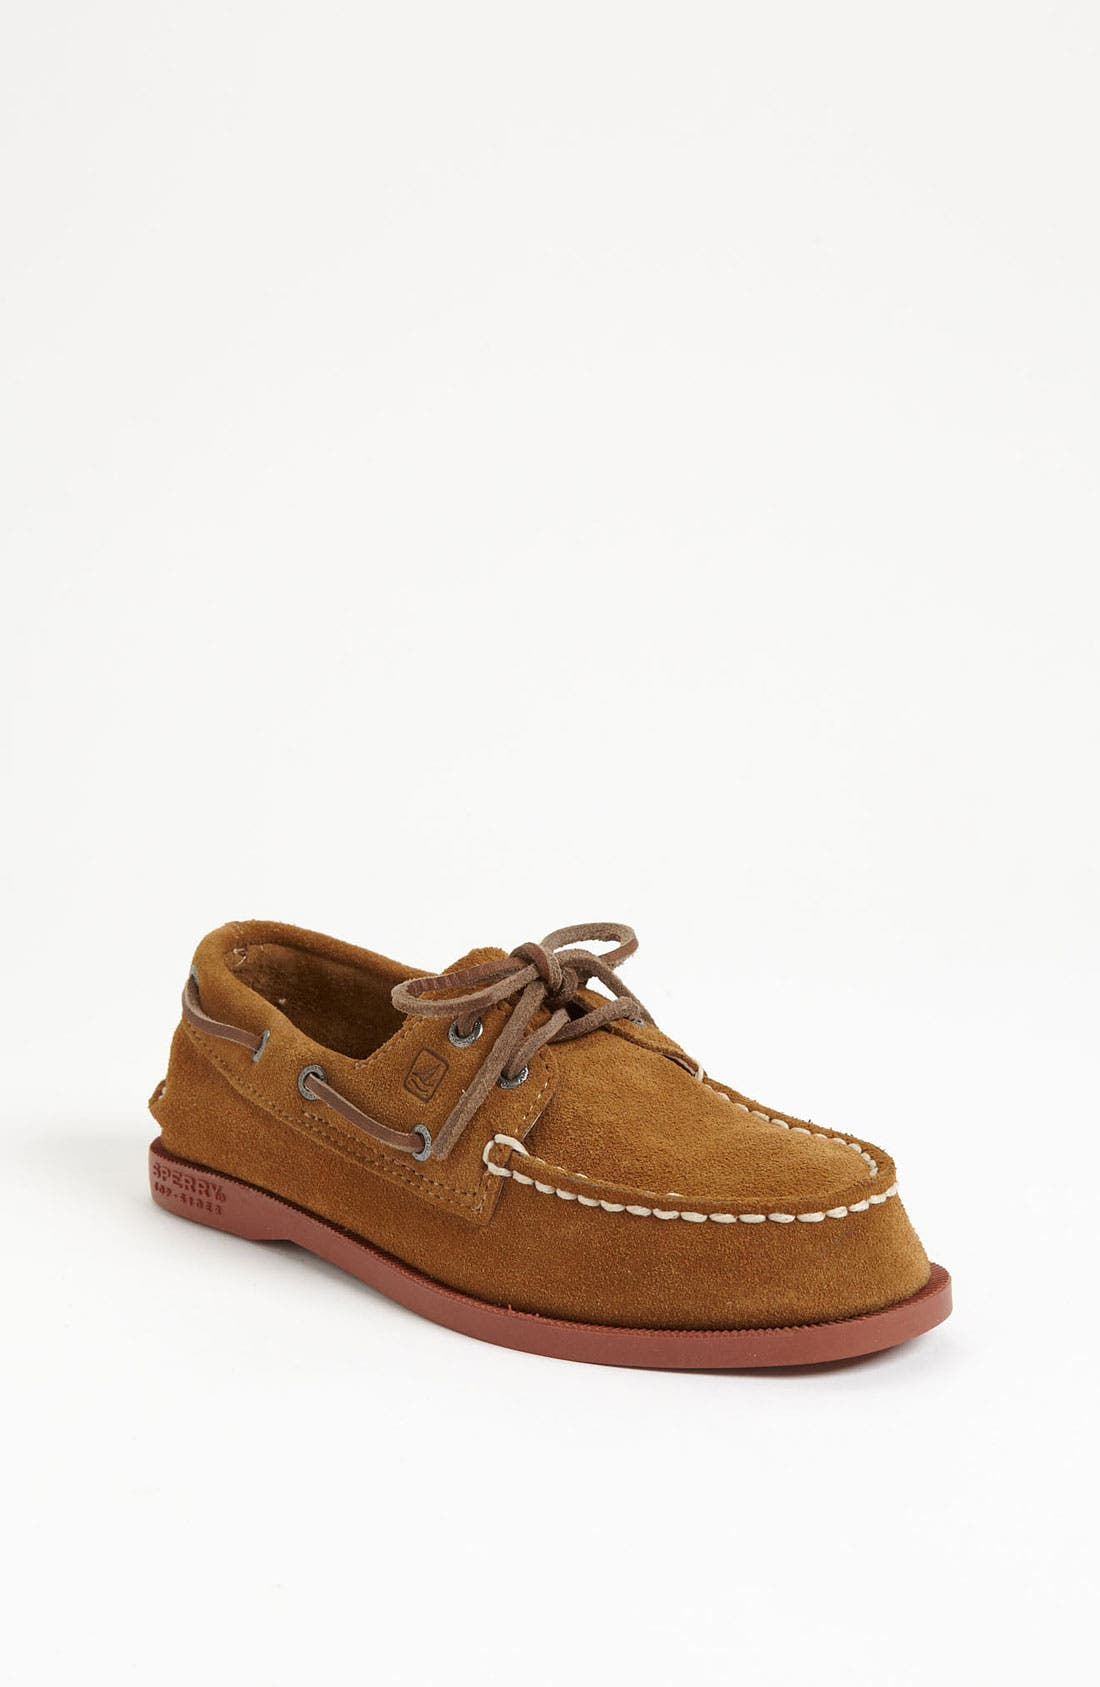 Main Image - Sperry Top-Sider® 'Authentic Original' Boat Shoe (Walker, Toddler, Little Kid & Big Kid)